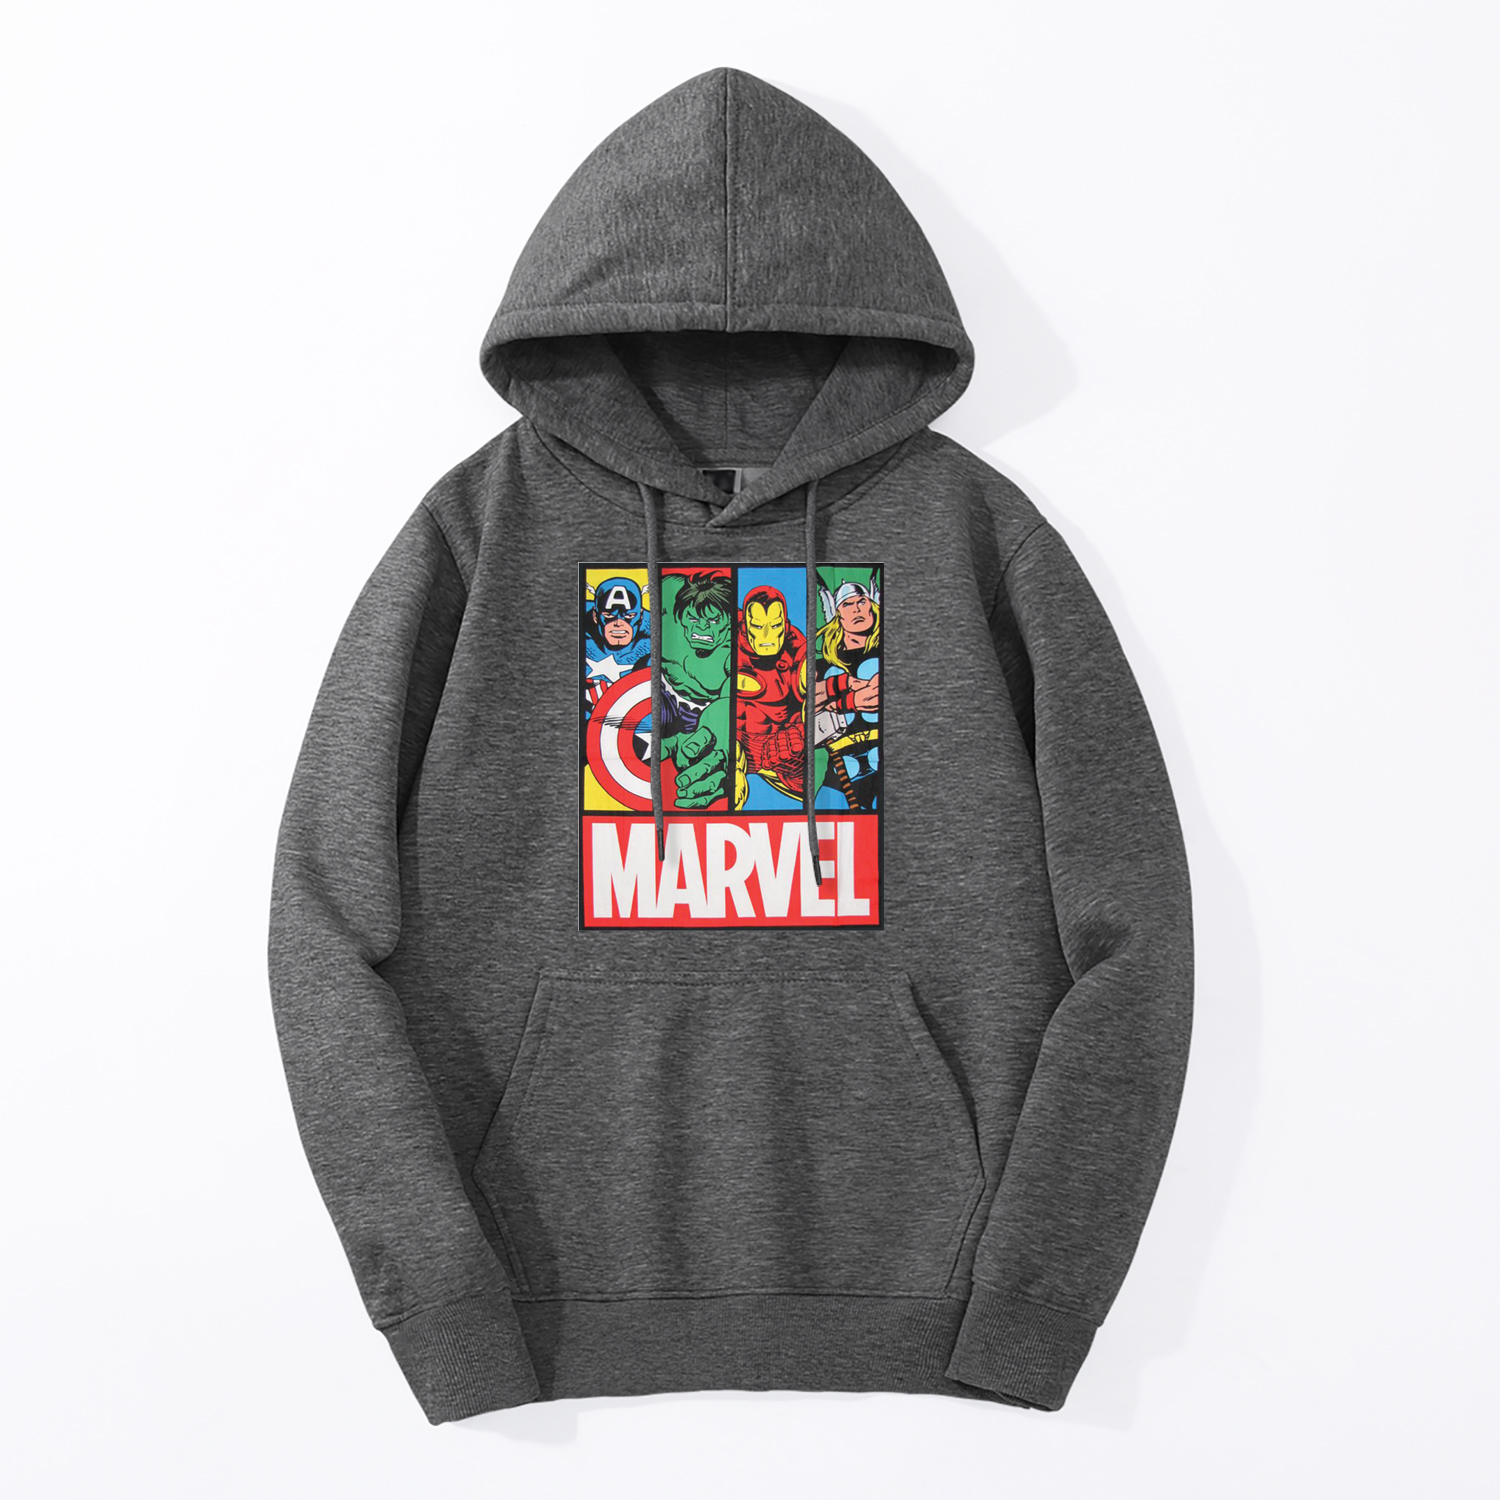 New Mens Marvel Hoodies Super Hero The Avengers End Game Hoody Casual Fleece Iron Man Hulk Hooded Tracksuit Hip Hop Streetwear